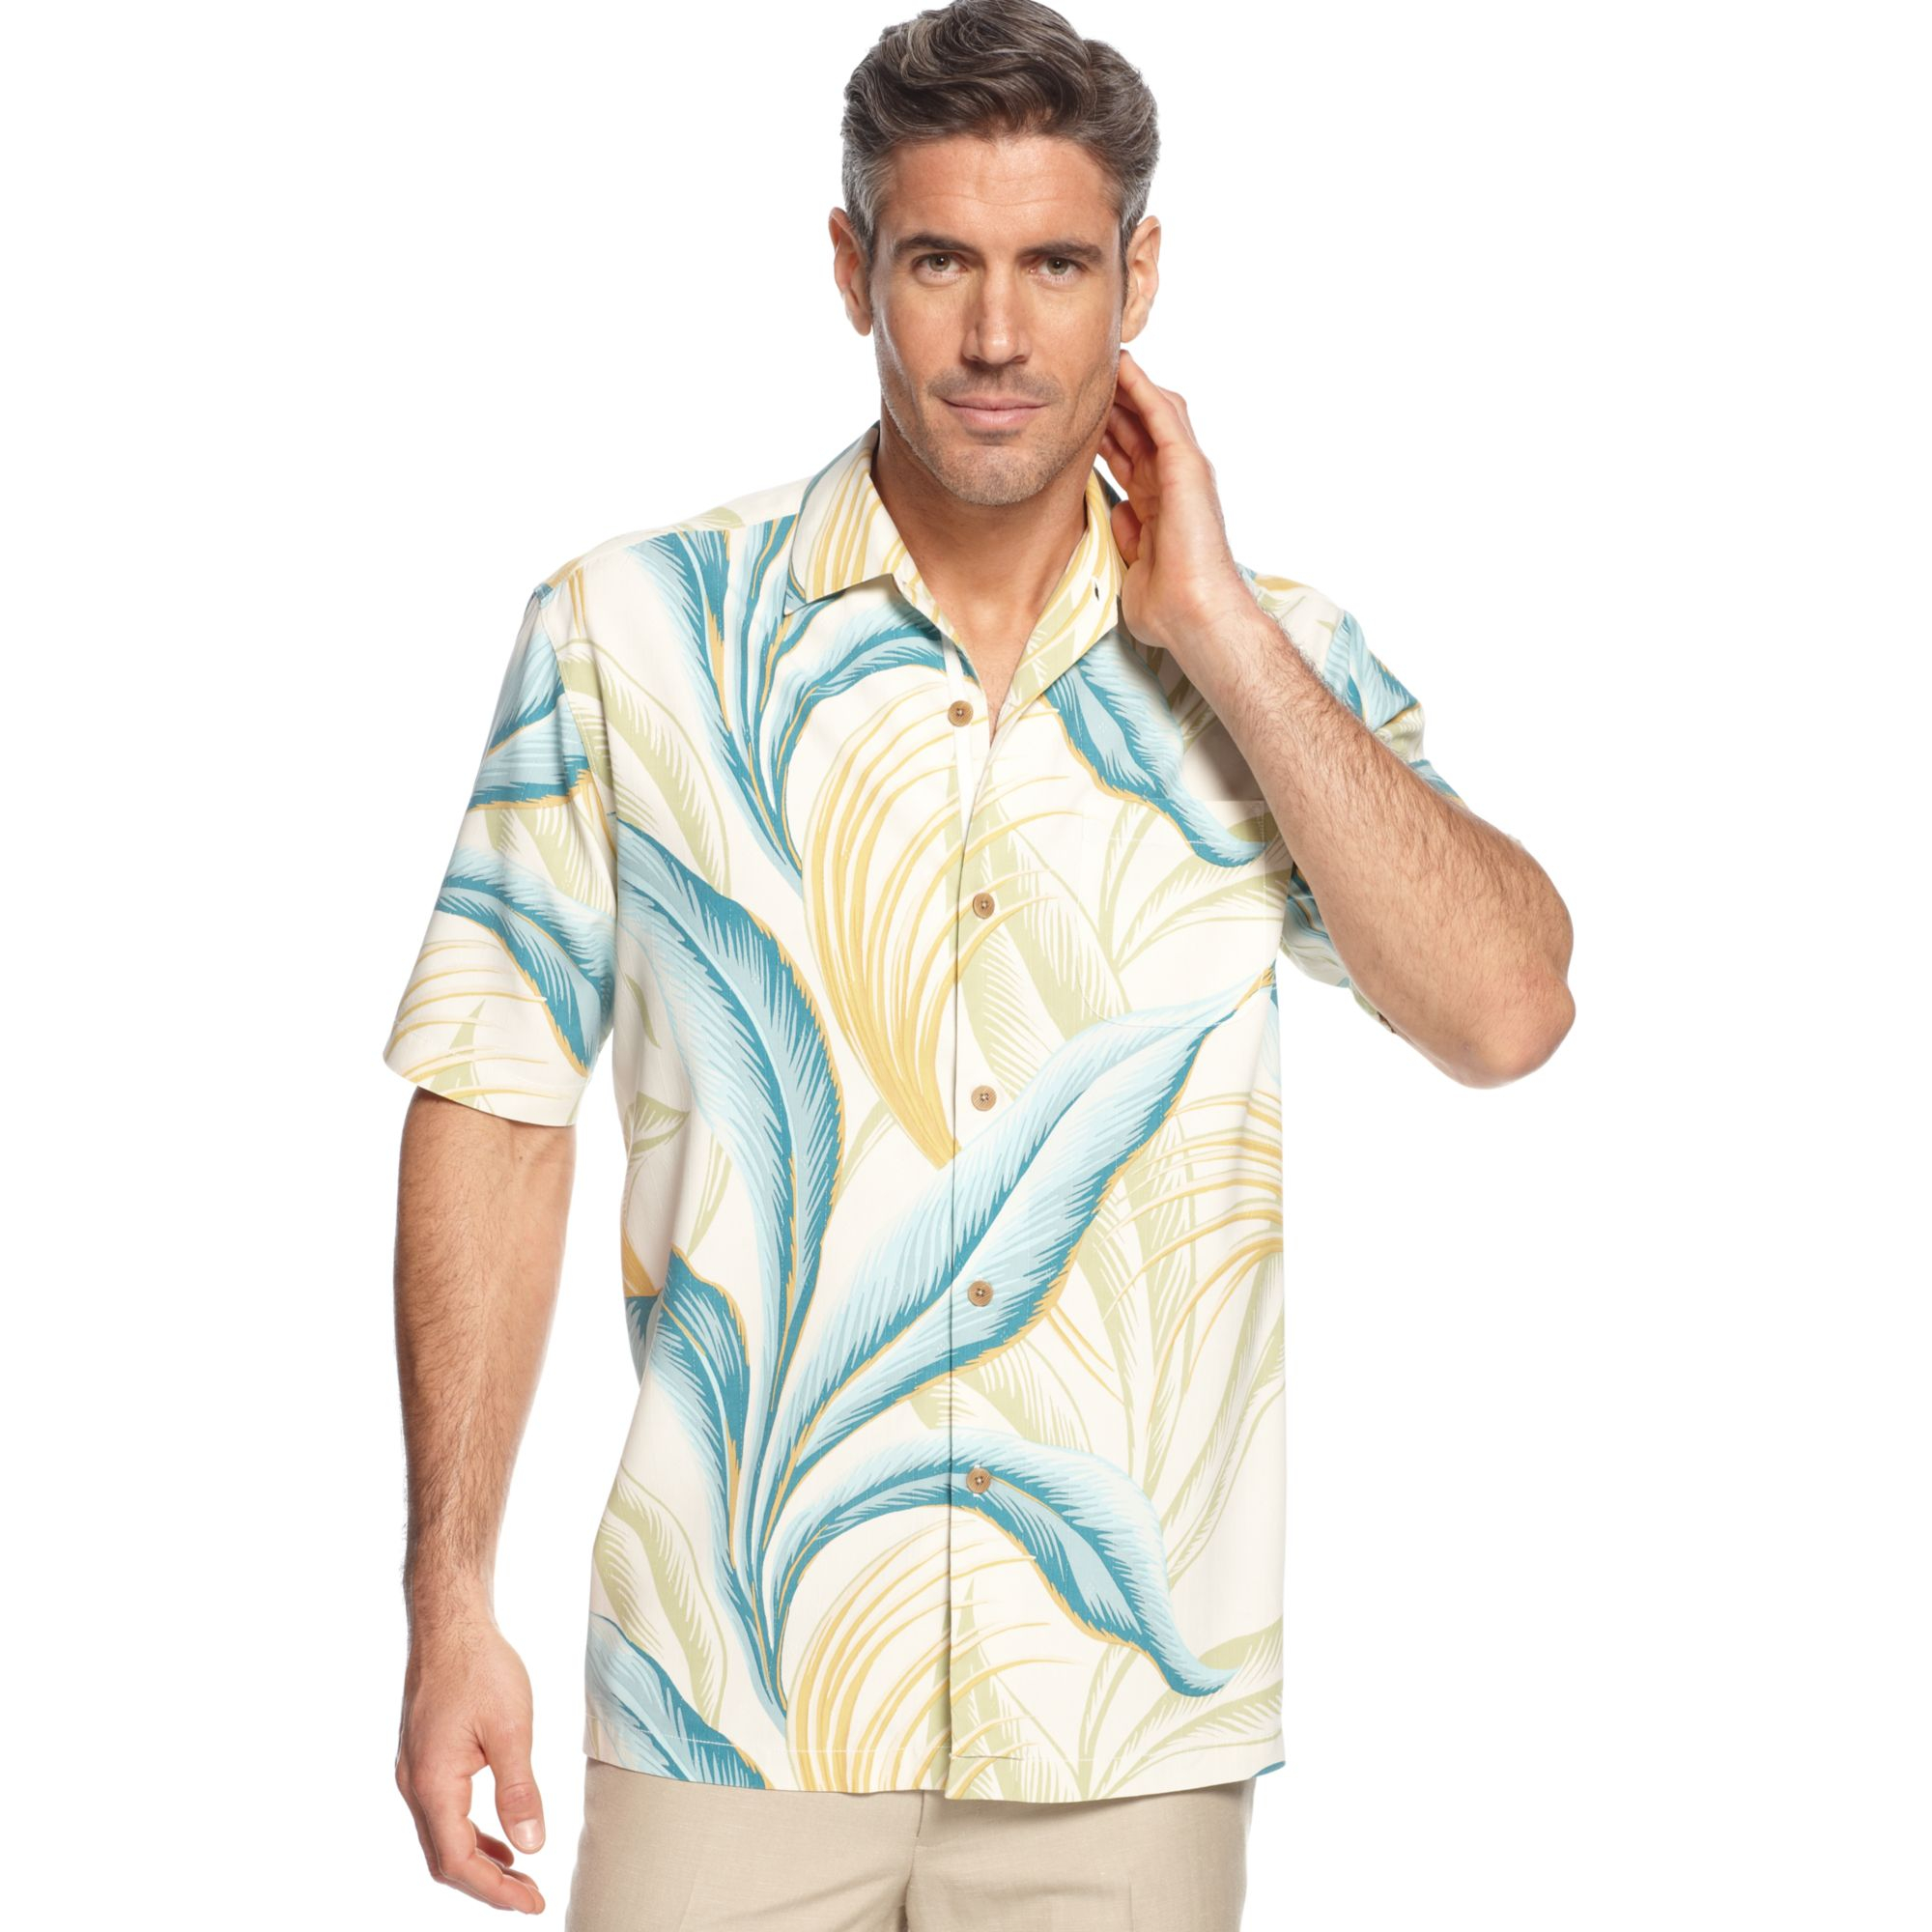 Lyst tommy bahama trelawny leaf shirt in blue for men for Tommy bahama christmas shirt 2014